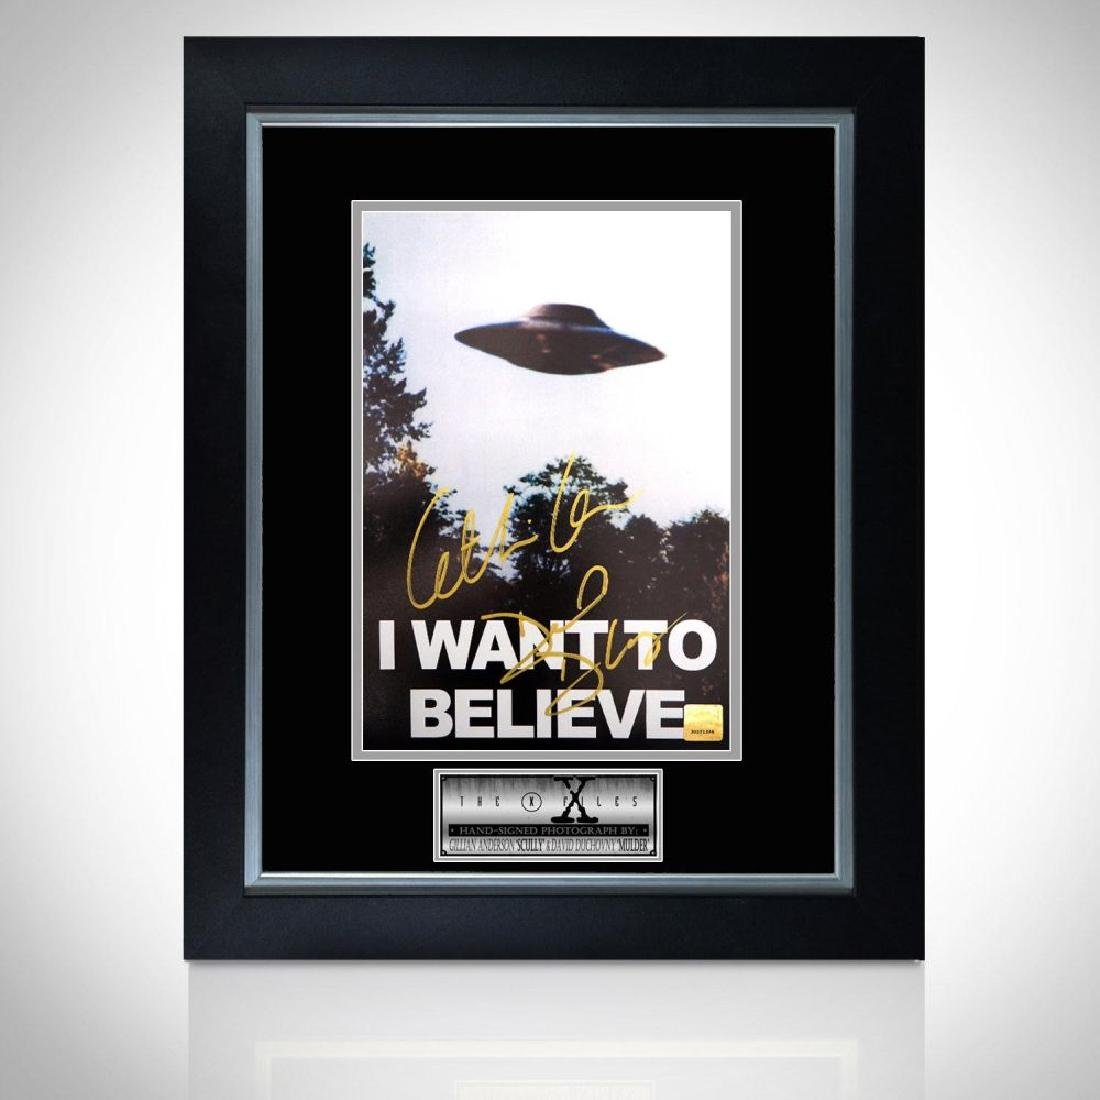 Duchovny & Anderson Signed I Want to Believe Framed